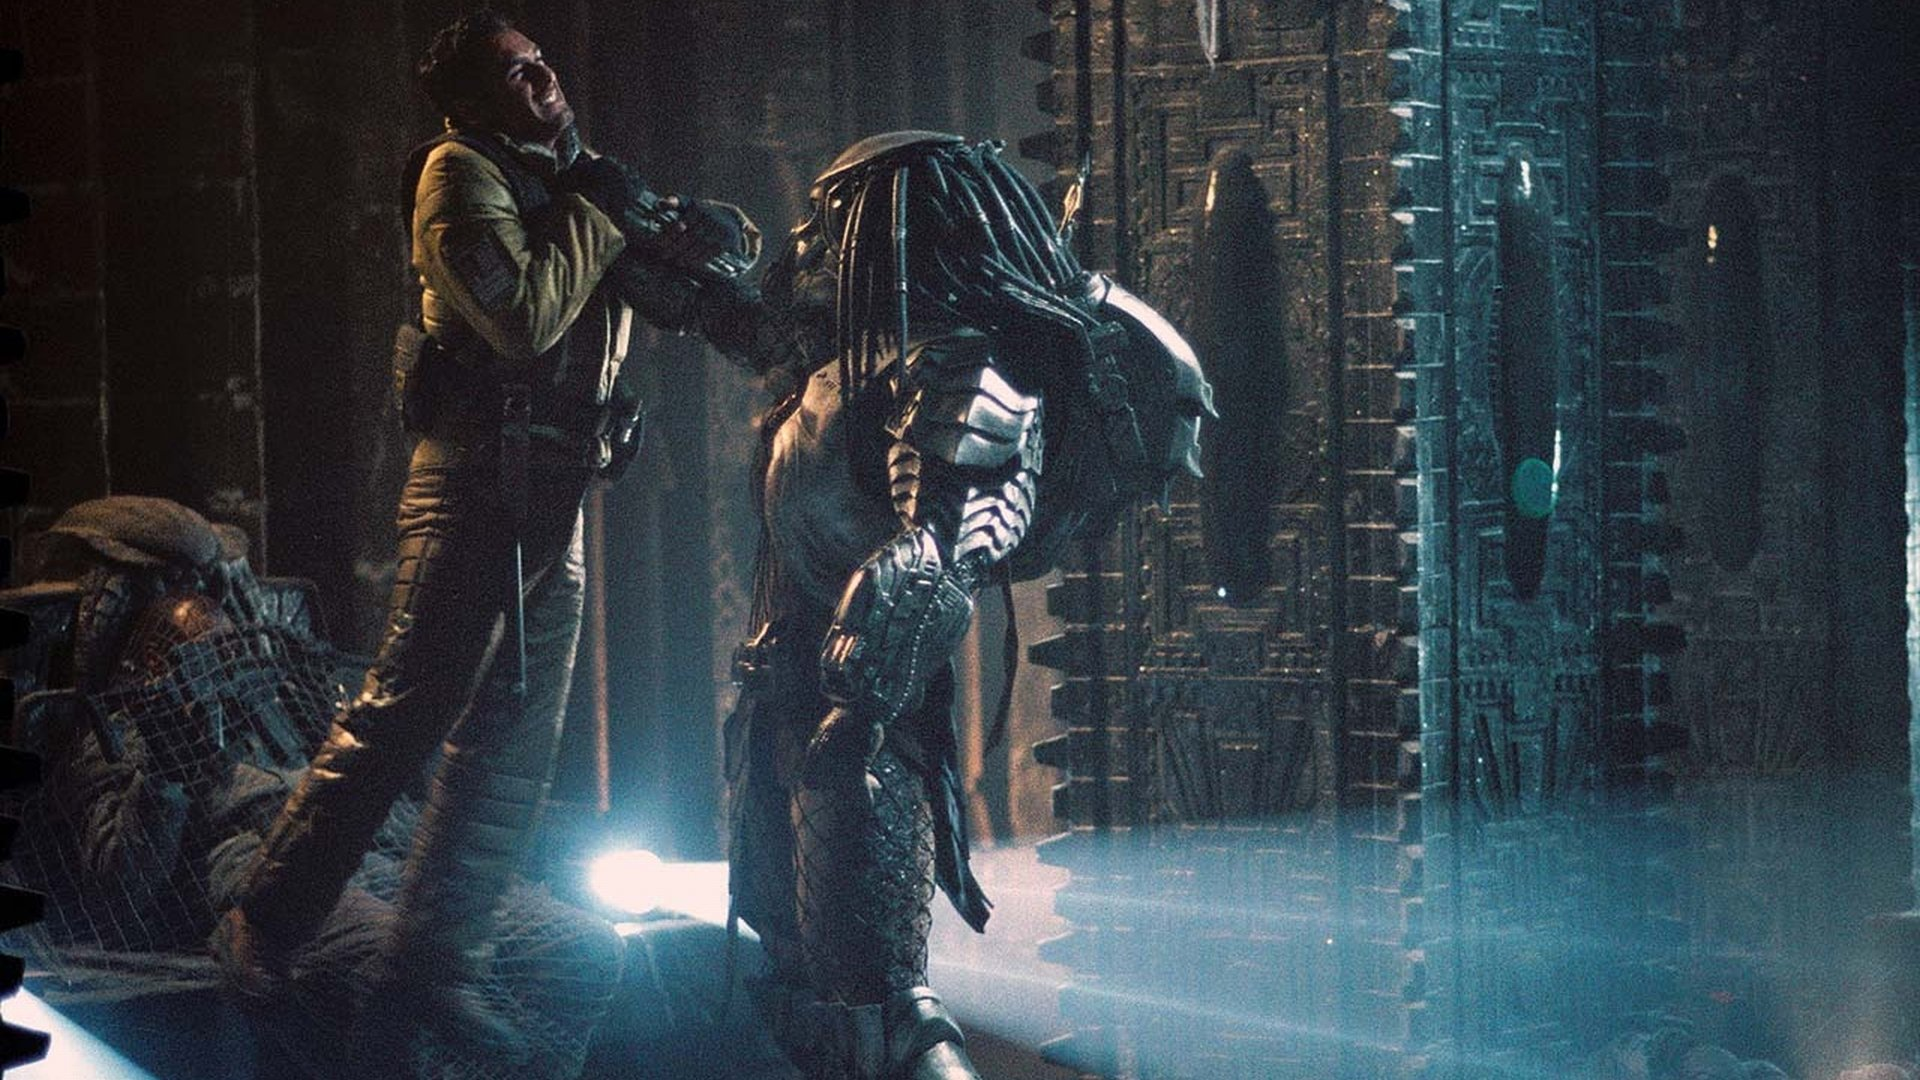 10 AVP Alien vs Predator HD Wallpapers Background Images 1920x1080